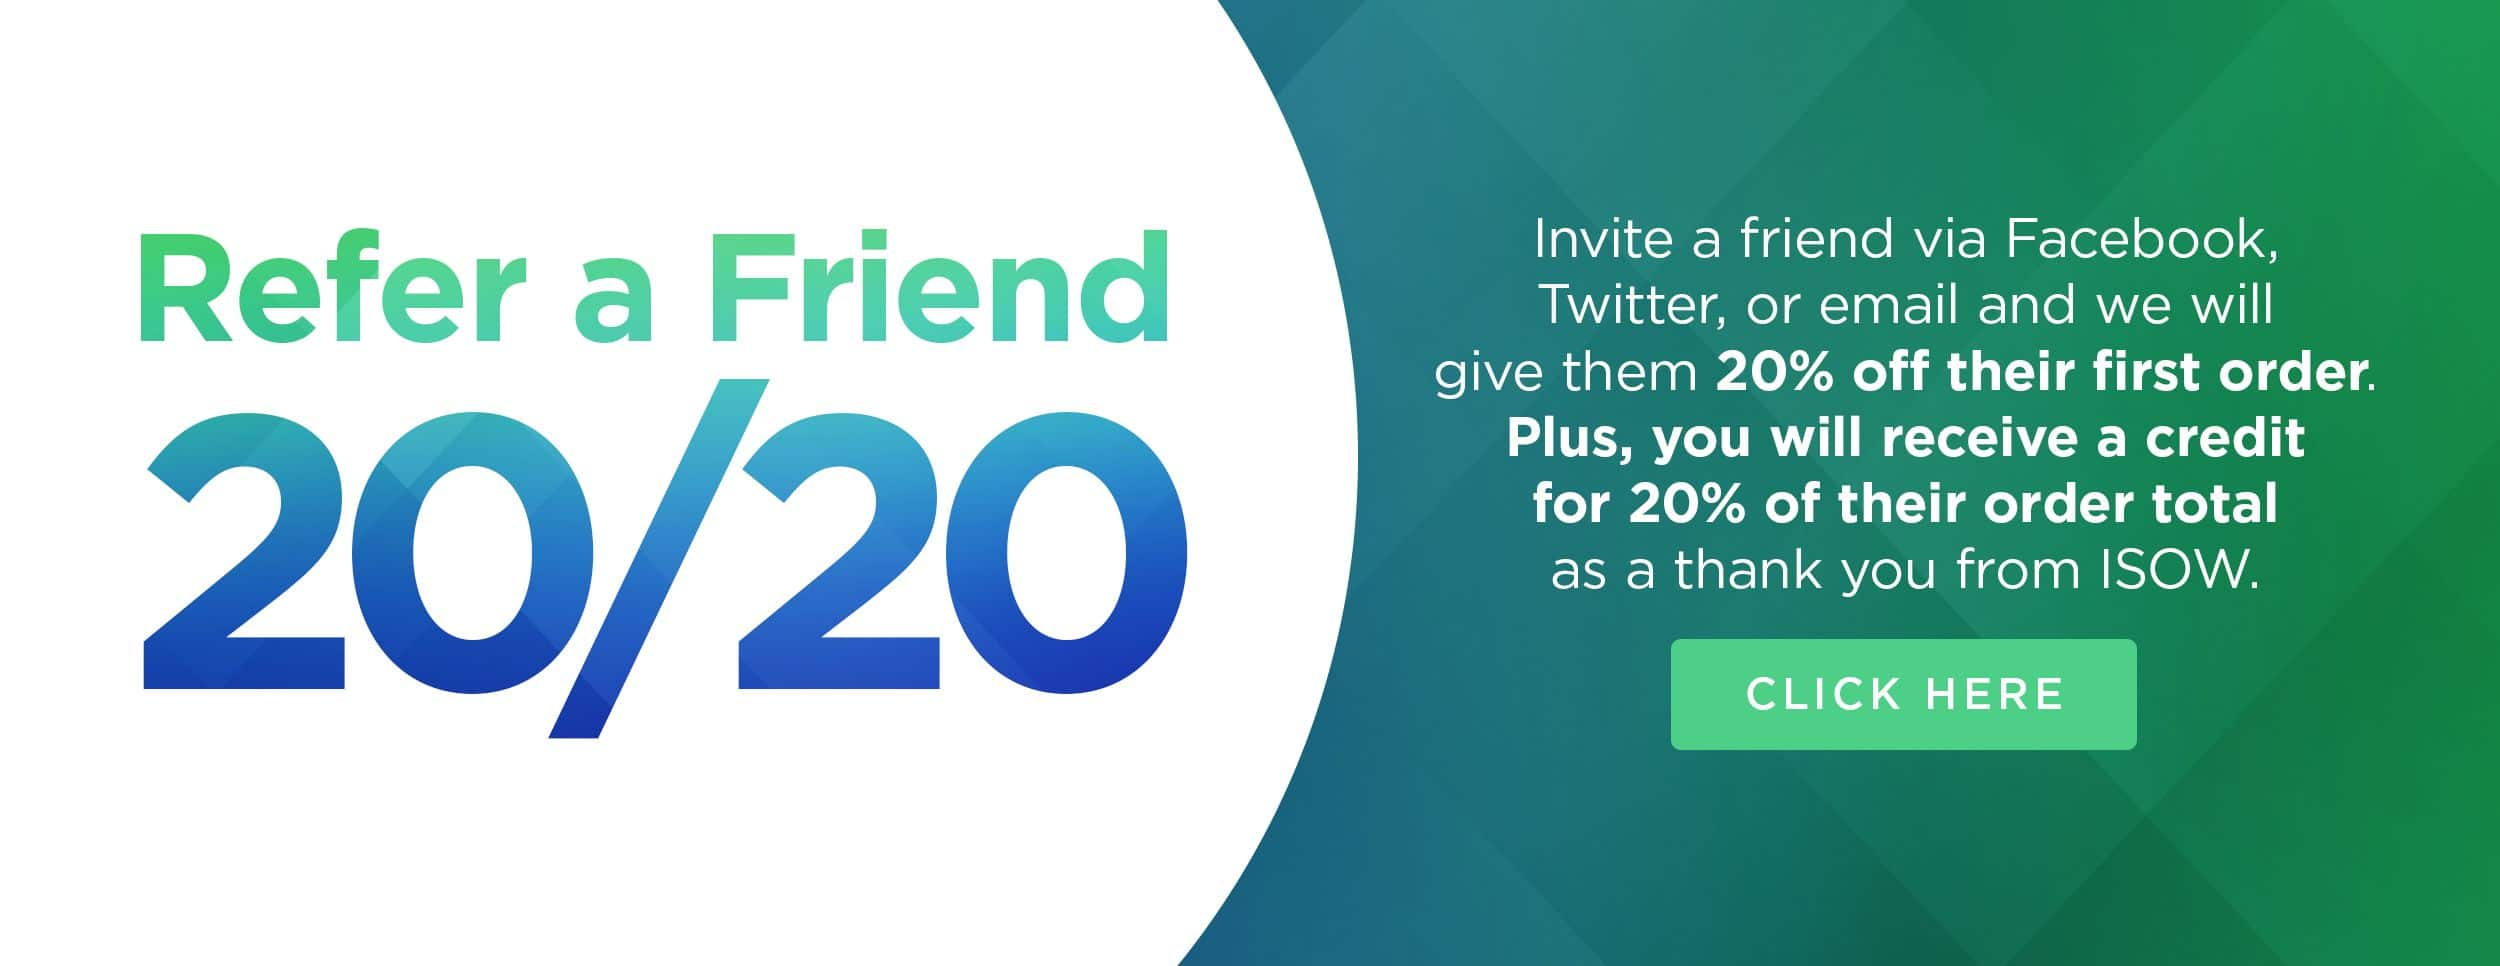 Refer-A-Friend—Website-Banner-compressor